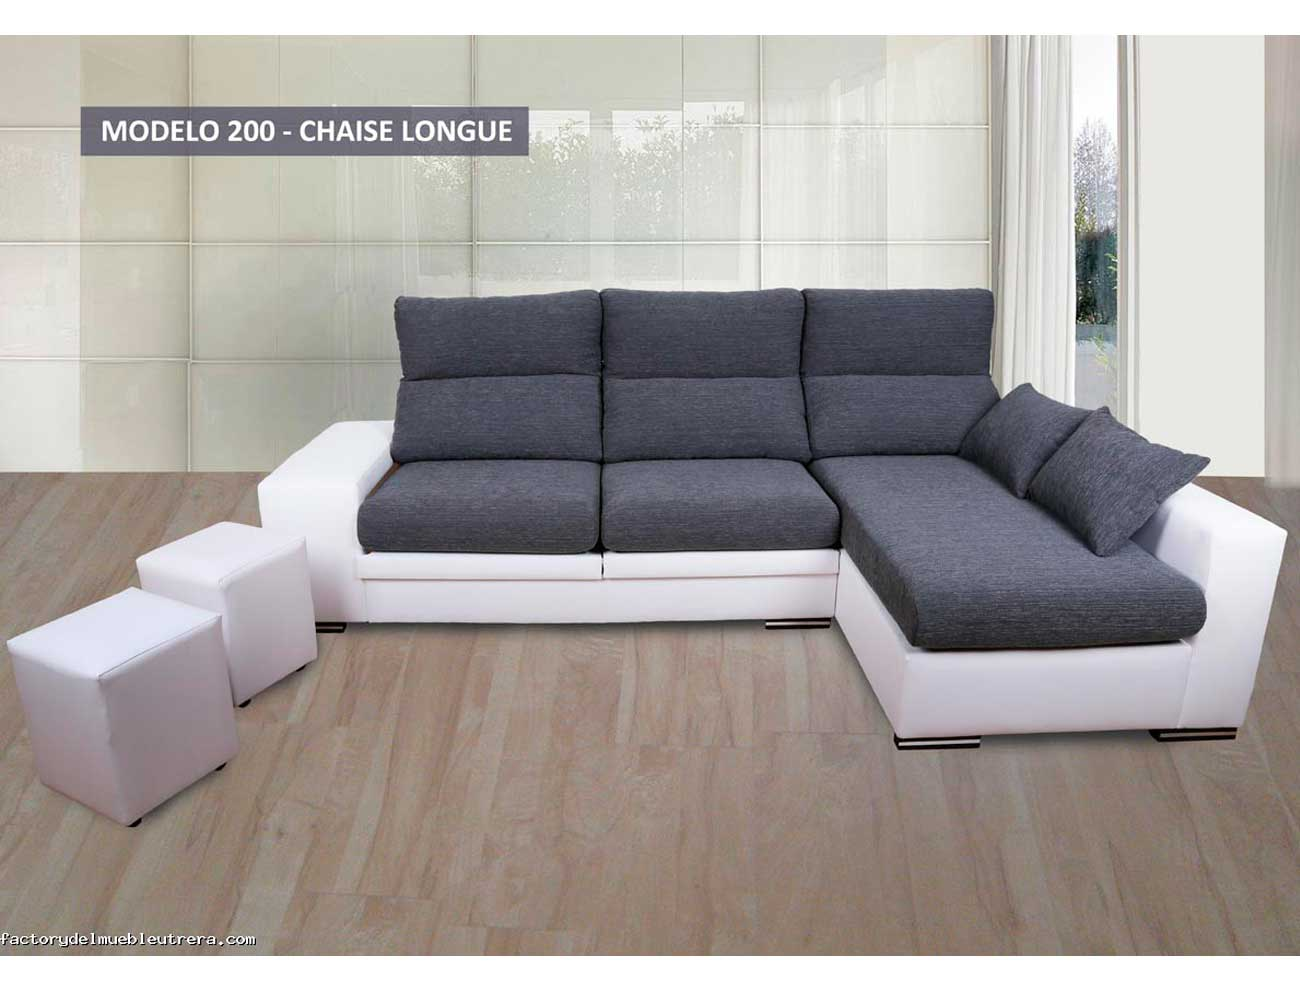 sof chaiselongue con opci n de arc n 7164 factory del